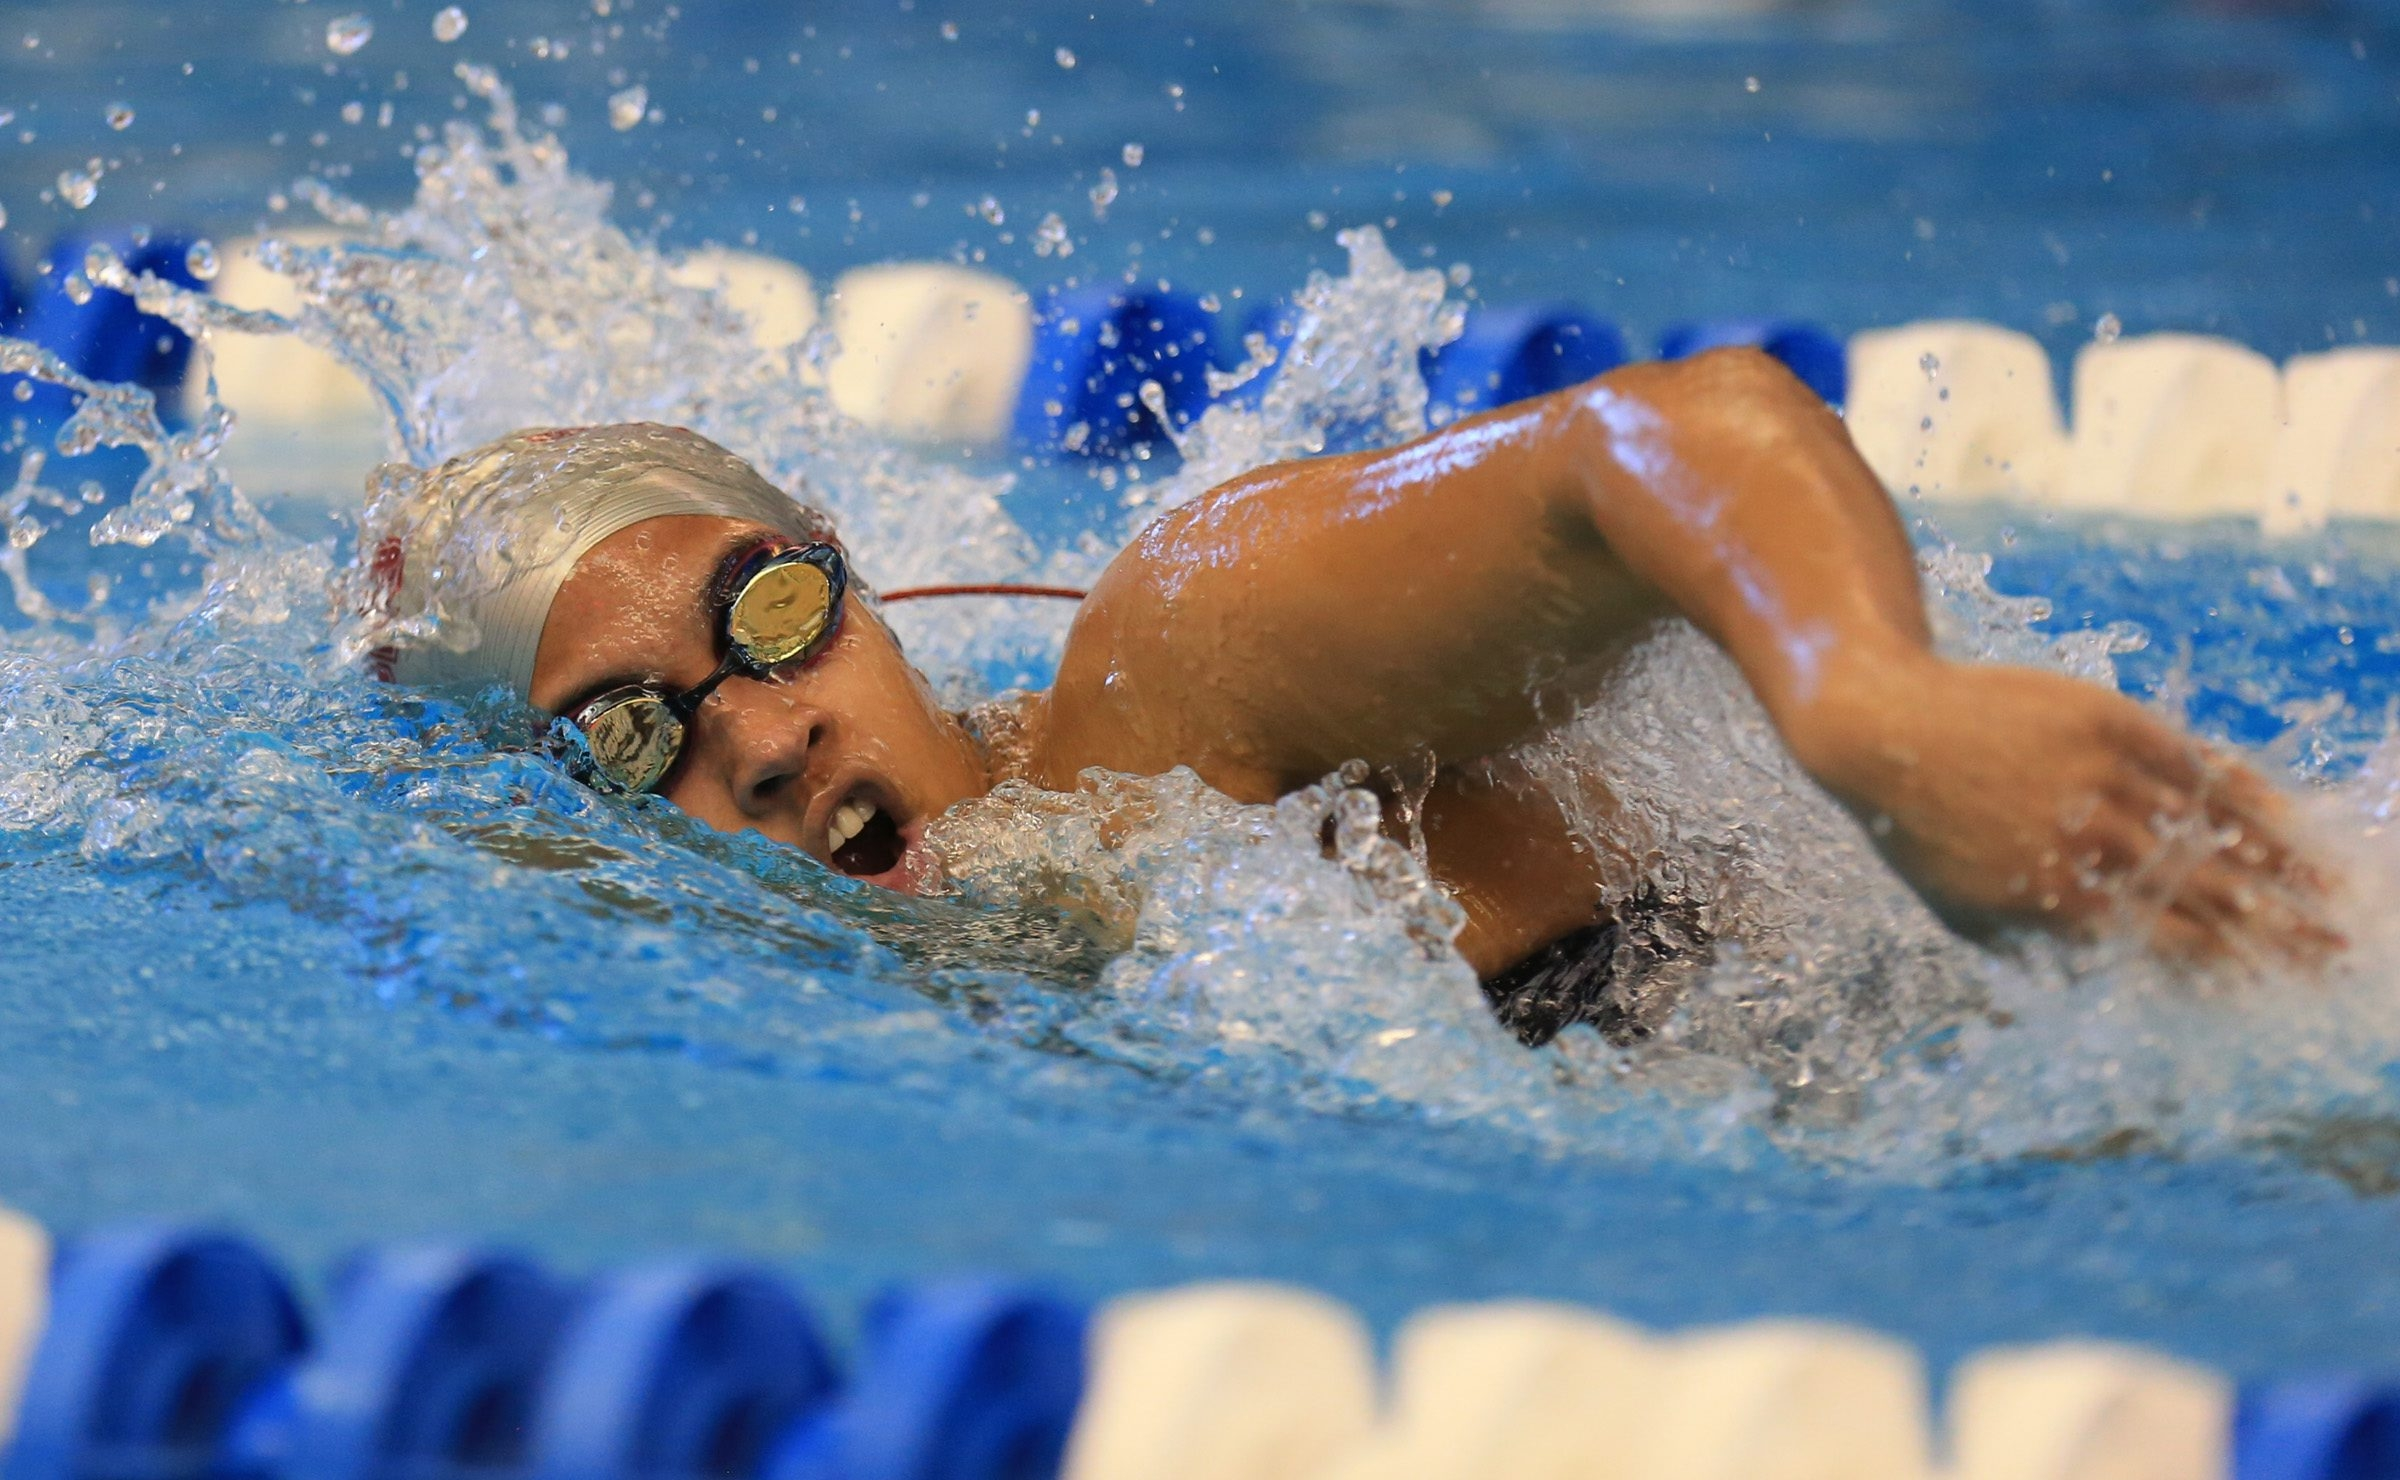 Alize Allen from City Honors swam a 2:18.70 in the 200-yard IM, setting a Buffalo Public School, City Honors pool and City Honors program record.